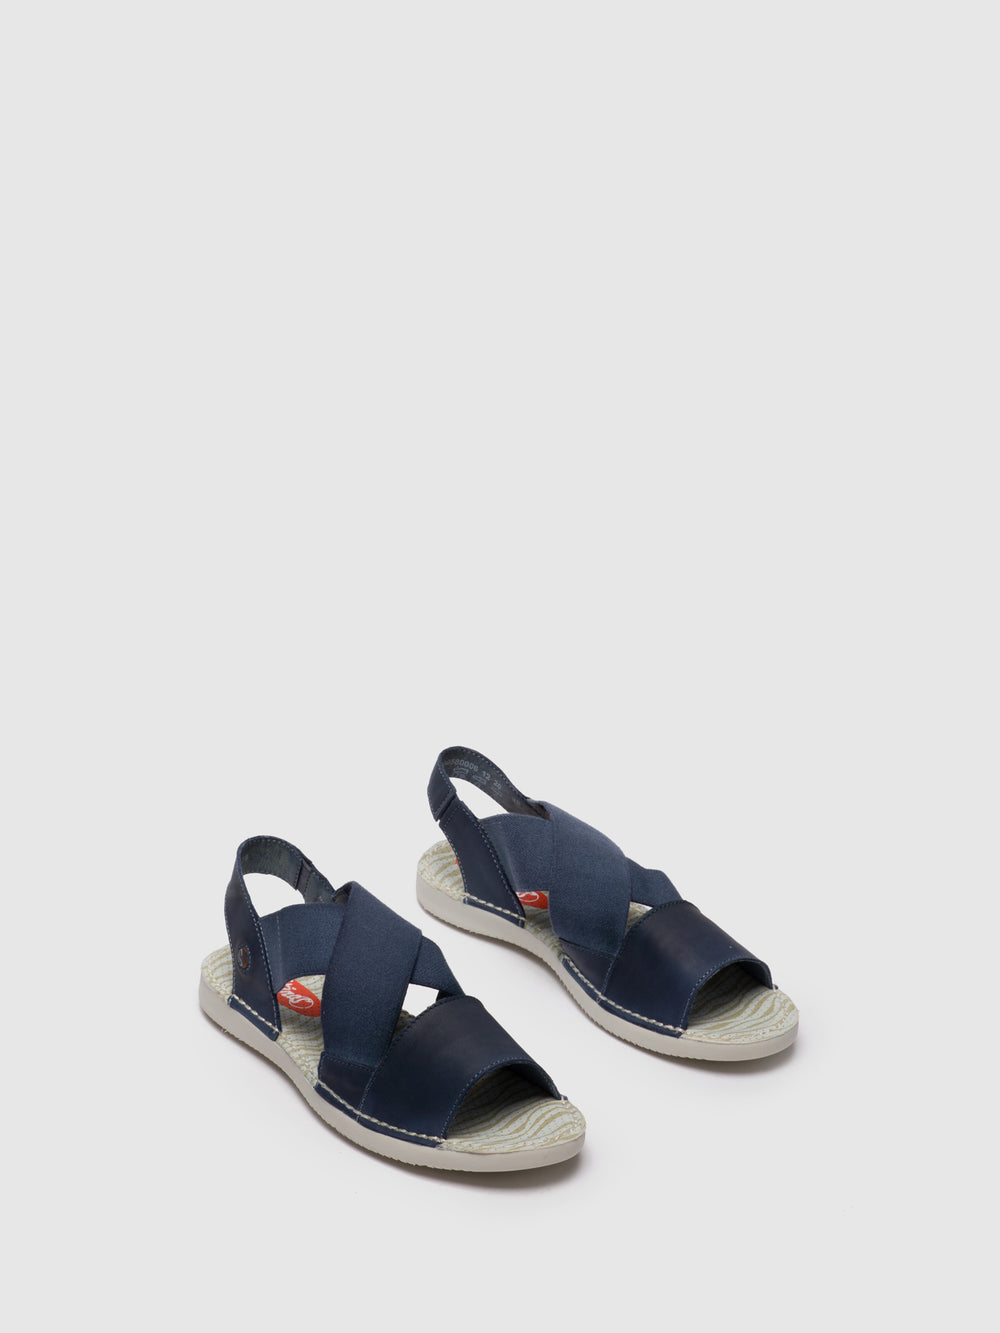 Crossover Sandals TEUL580SOF Navy